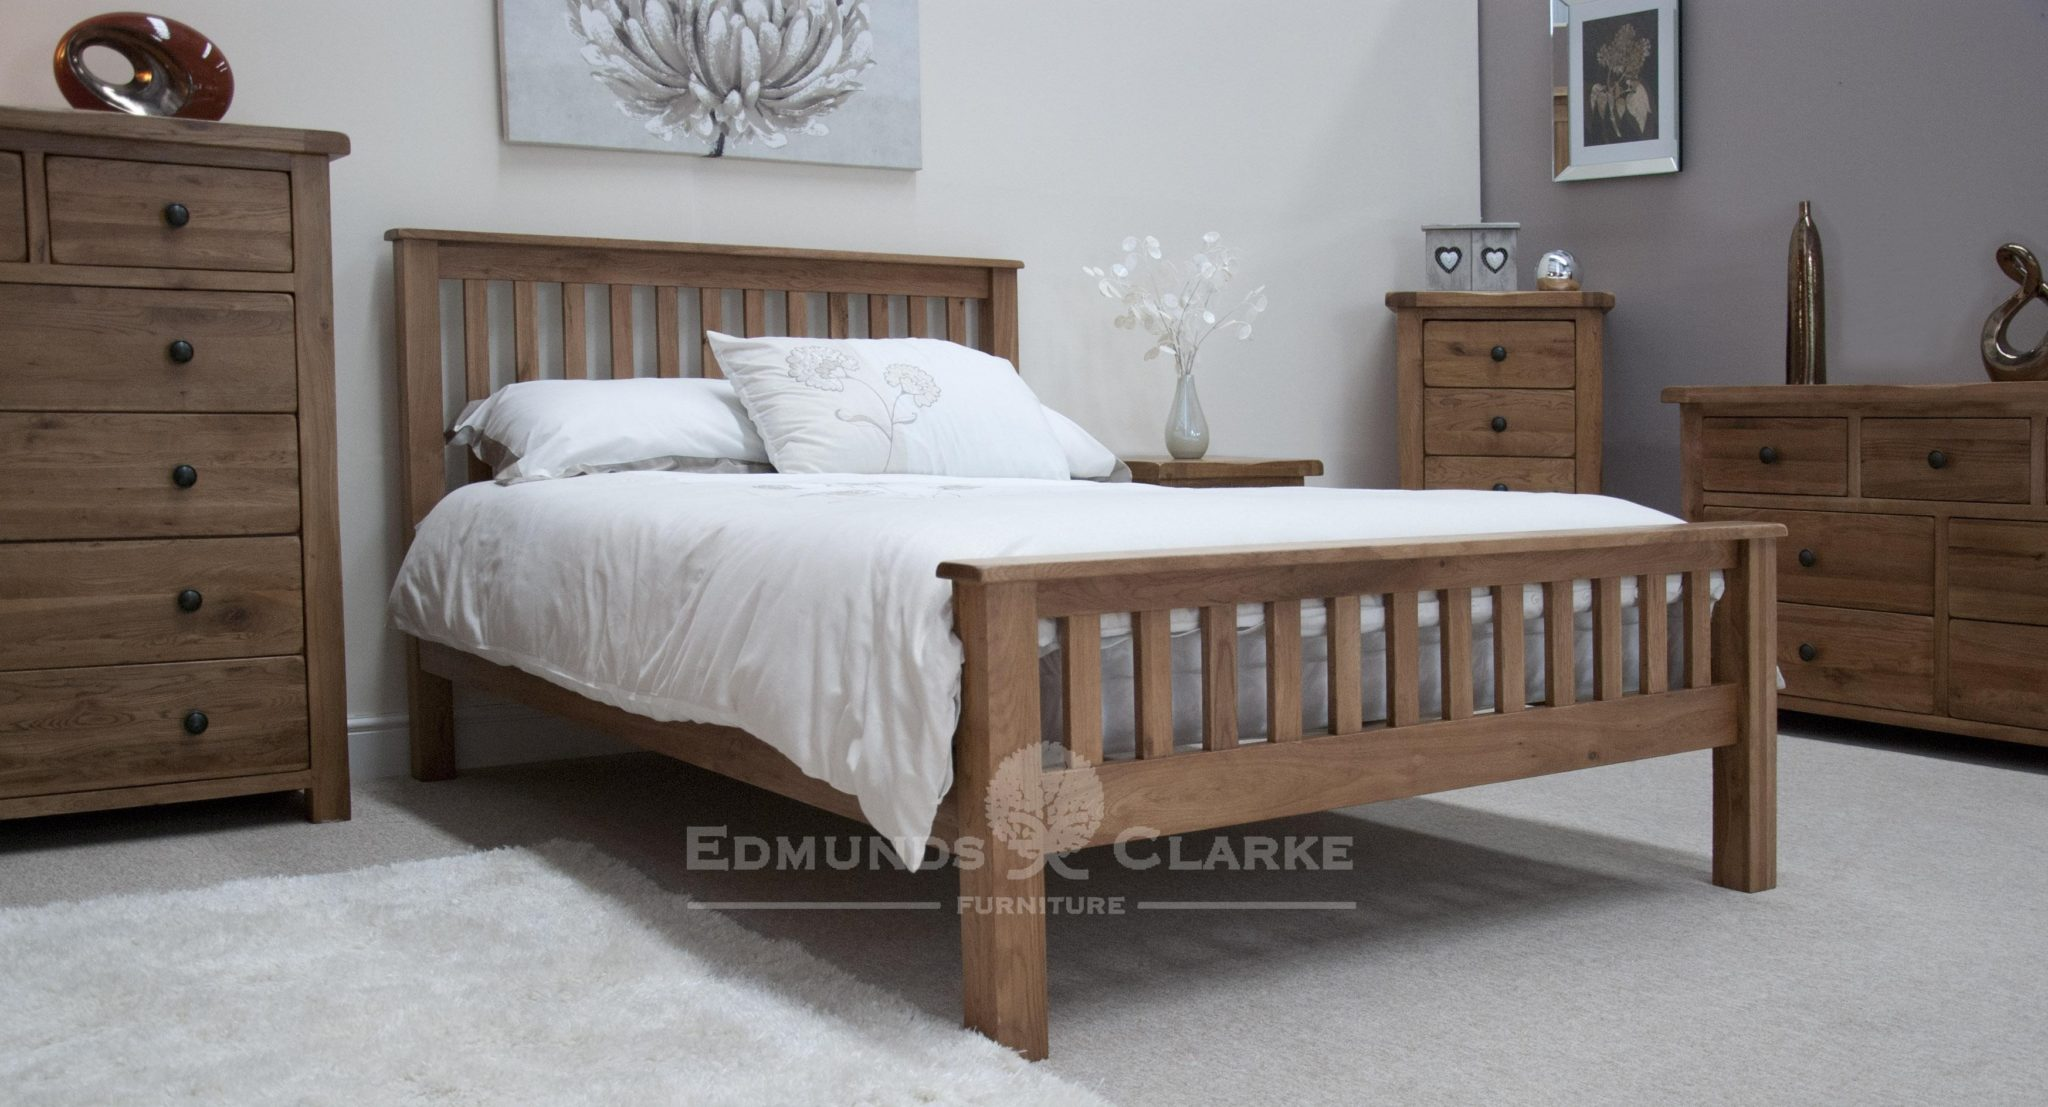 Lavenham solid rustic oak king size bed. vertical slatted head and foot boards